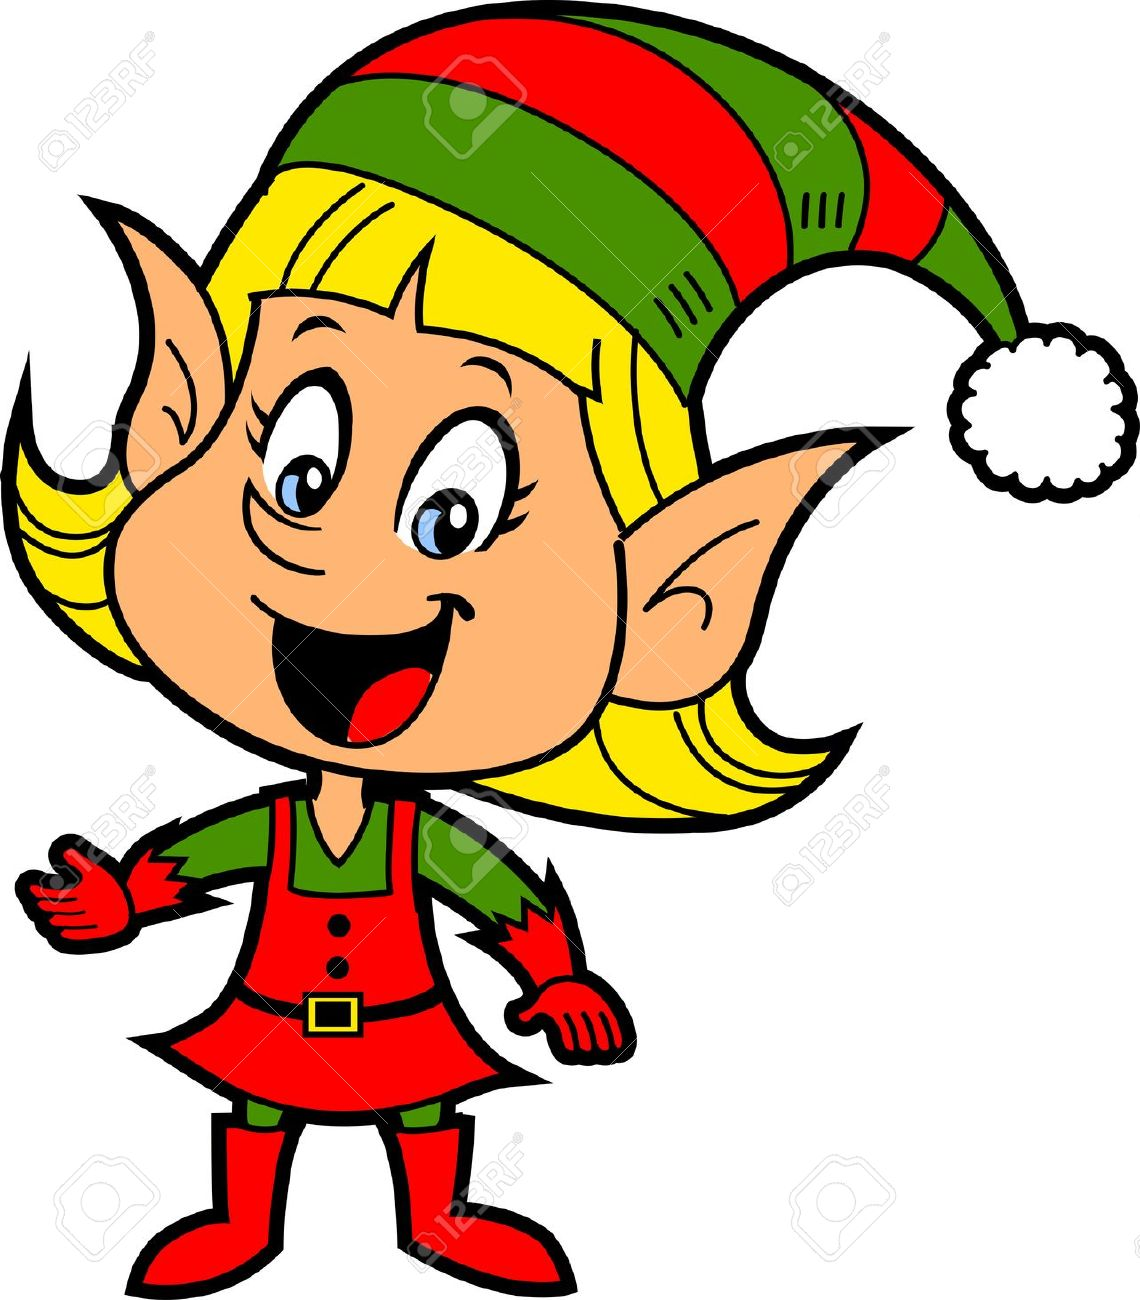 hight resolution of 8 967 christmas elf cliparts stock vector and royalty free